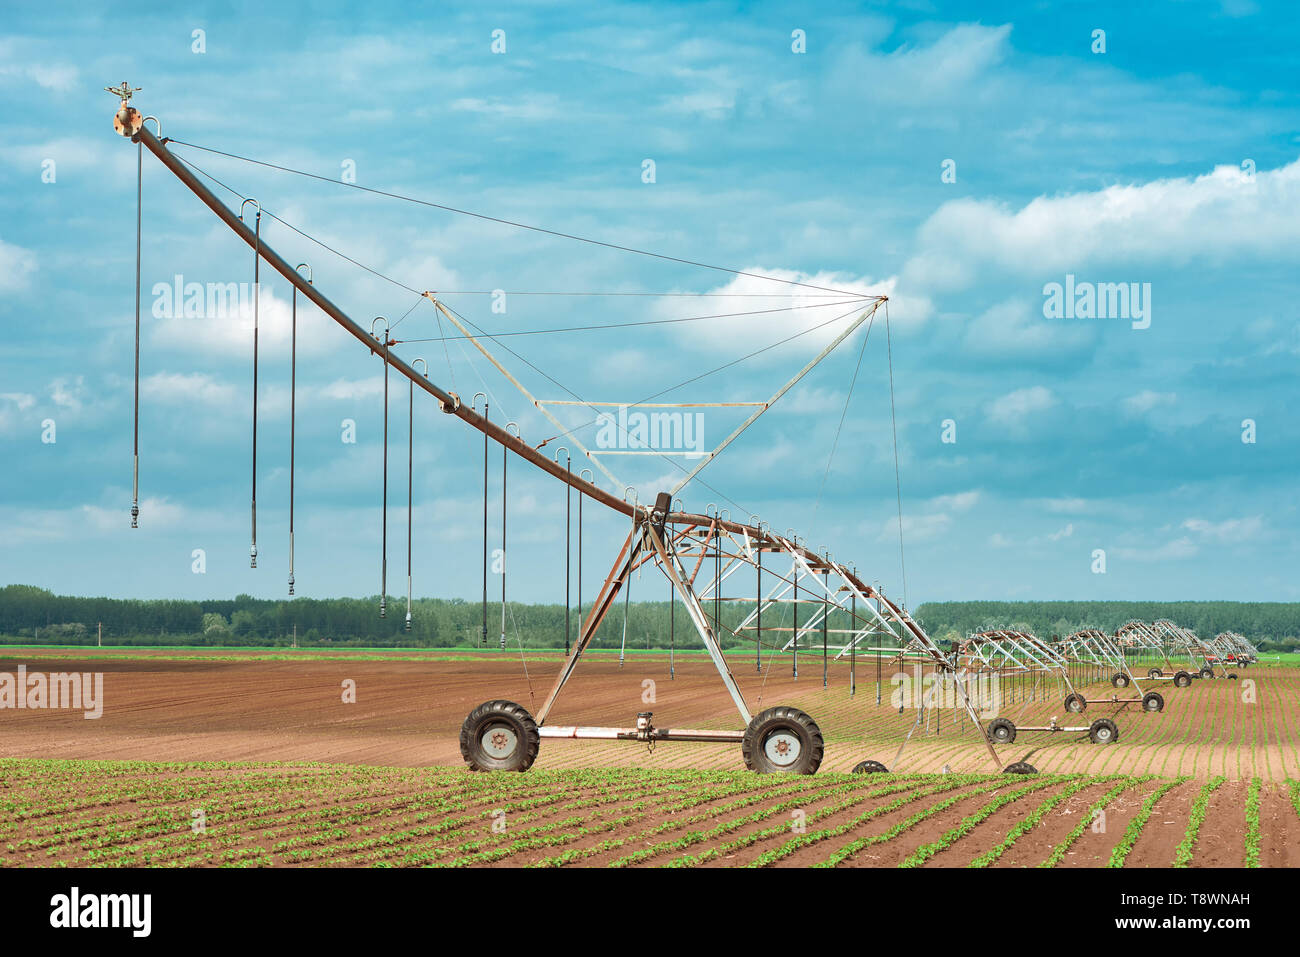 Pivot irrigation system in cultivated soybean and corn field, agricultural equipment for watering crops - Stock Image